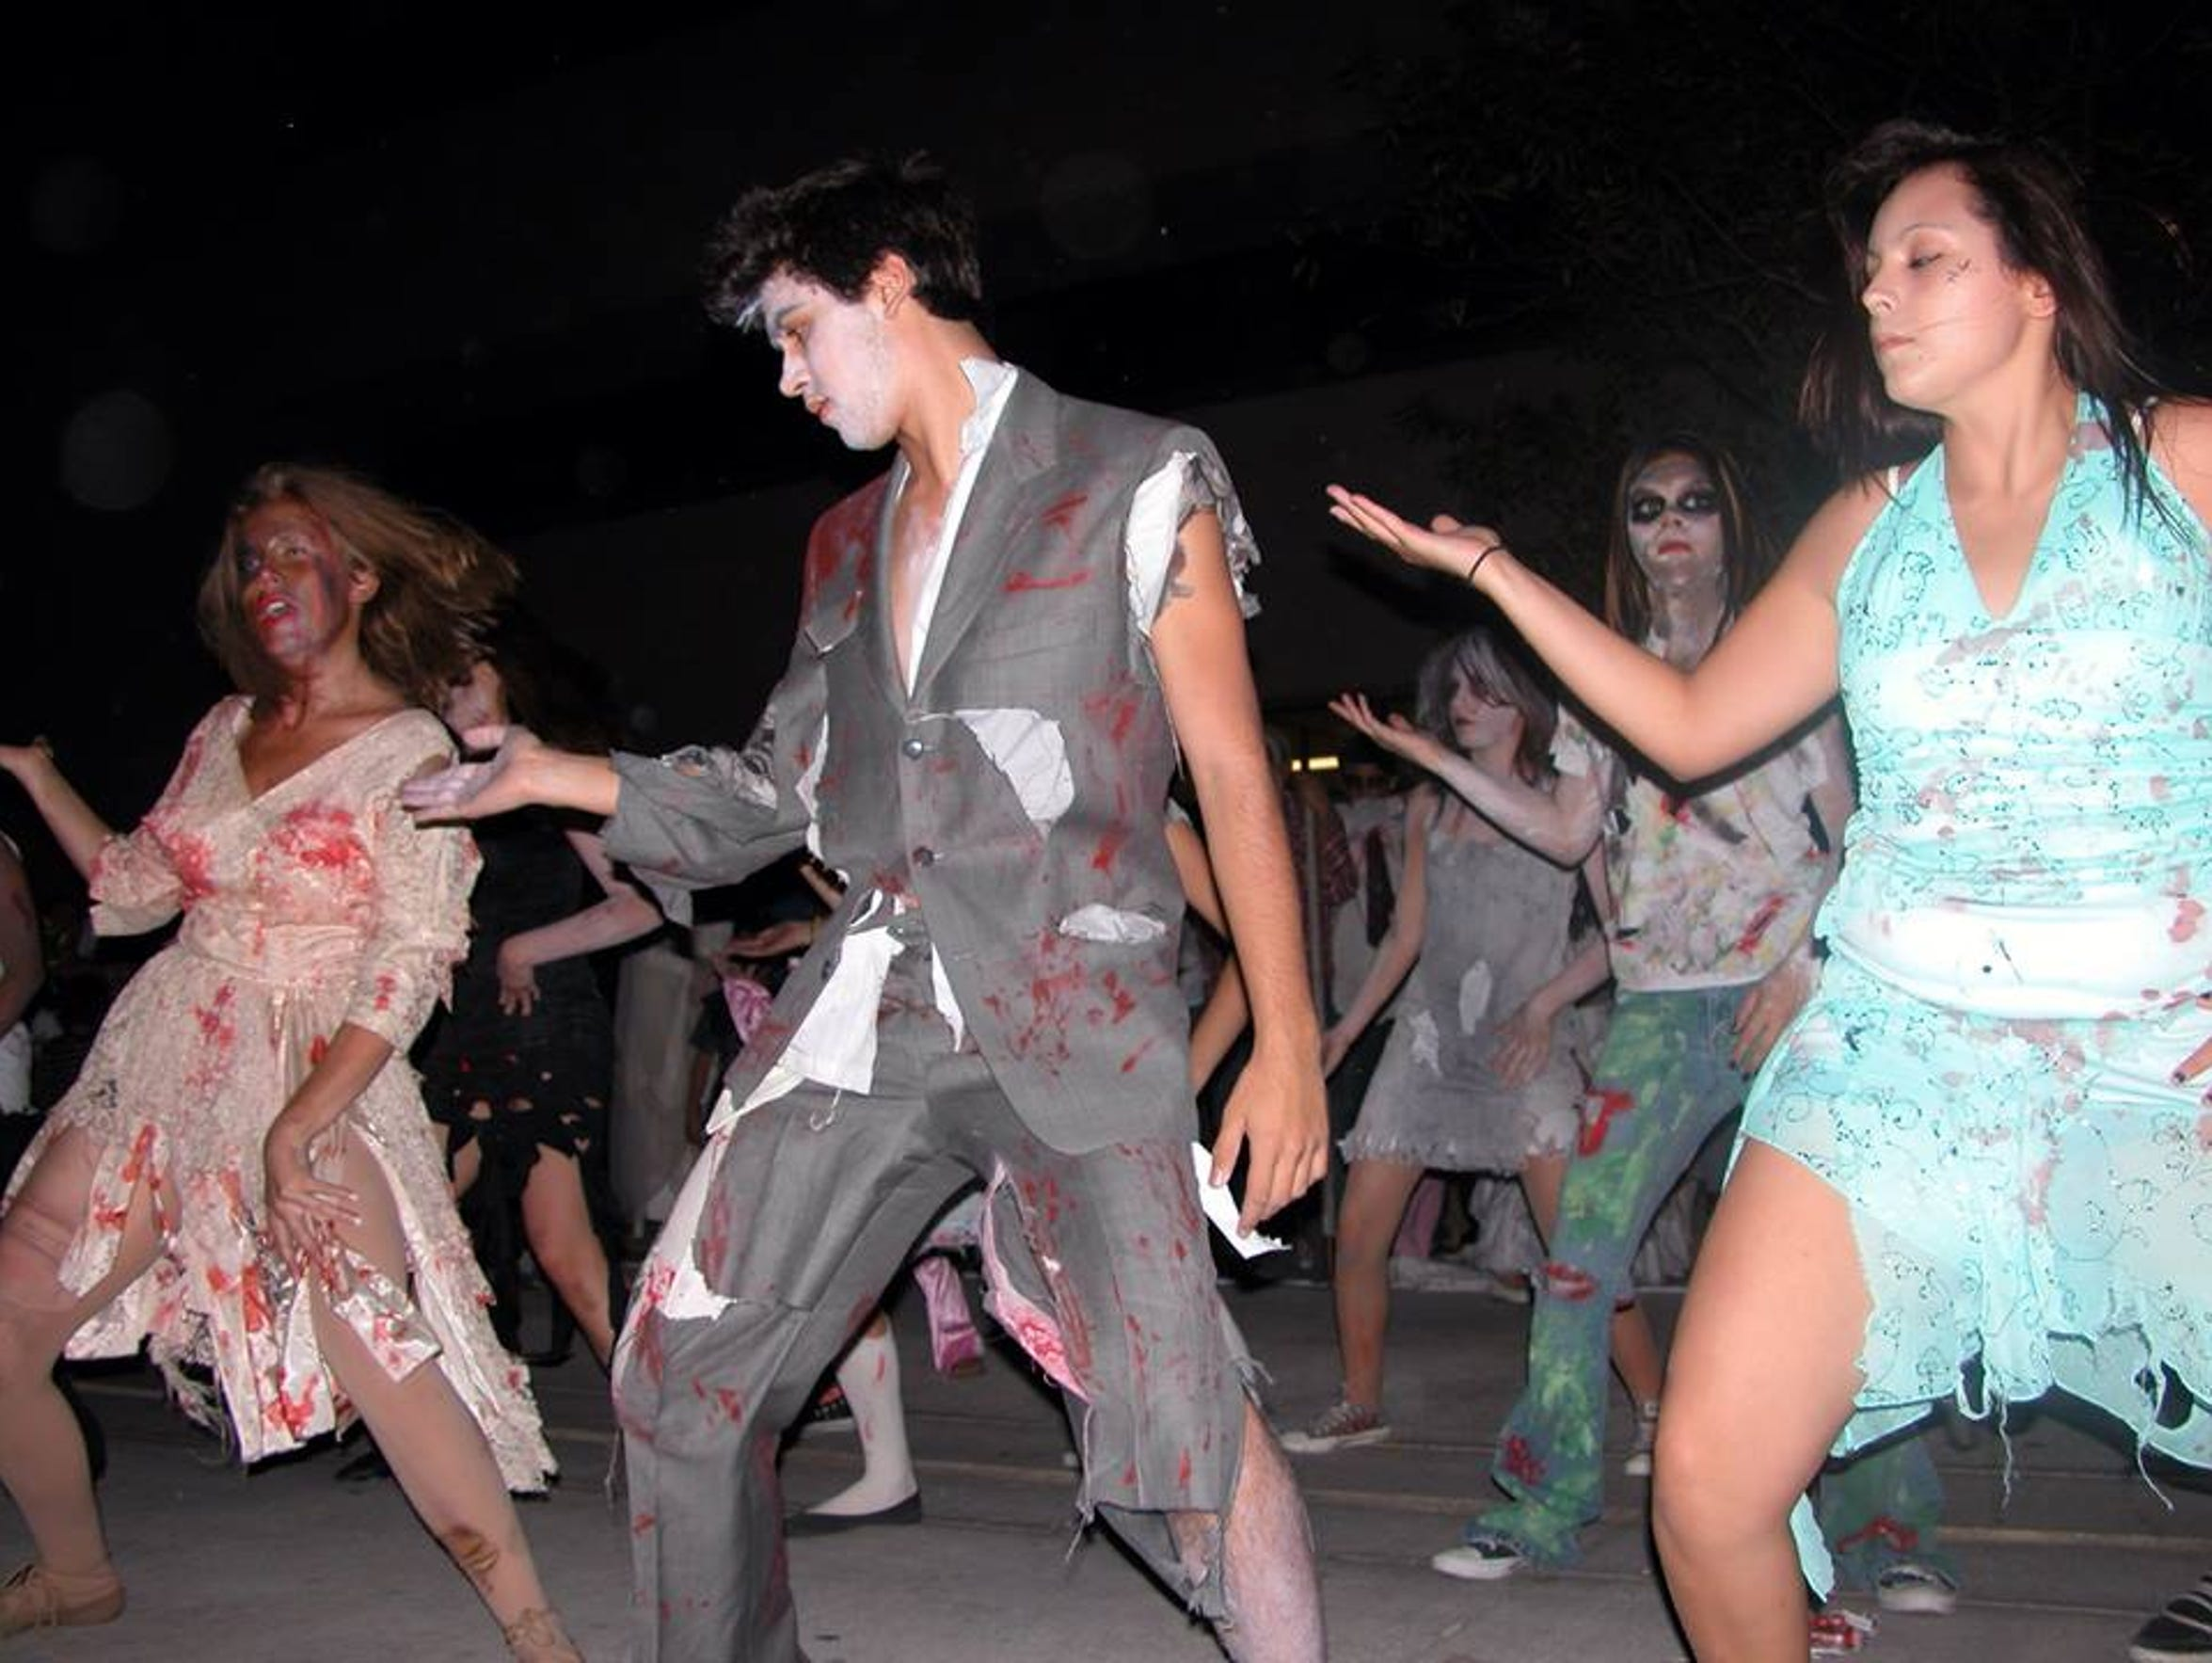 The eighth annual Zombie Walk will include performances by the Alma d'Arte Dance Troupe, HD2 Hip Hop Dance Studio, Daring Diamond Hip Hop Dance Studio andMichelle's Dance Academy.